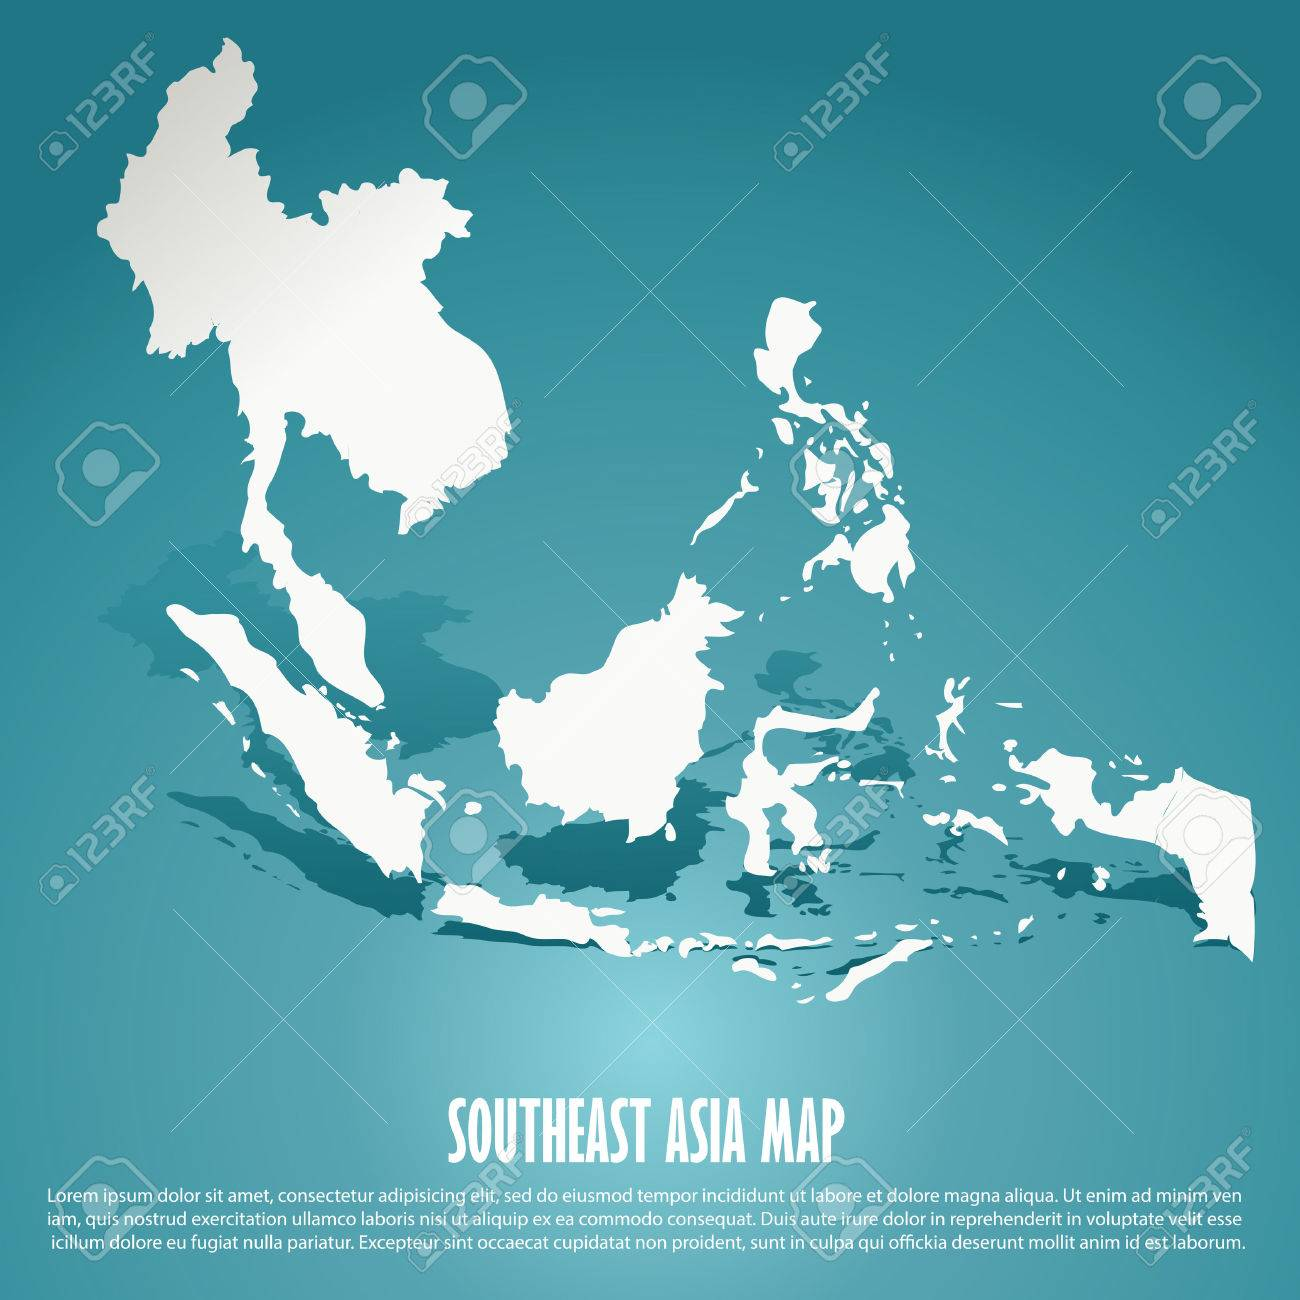 Southeast Asia map, AEC, Asean Economic Community map on green background, vector illustration - 37661634